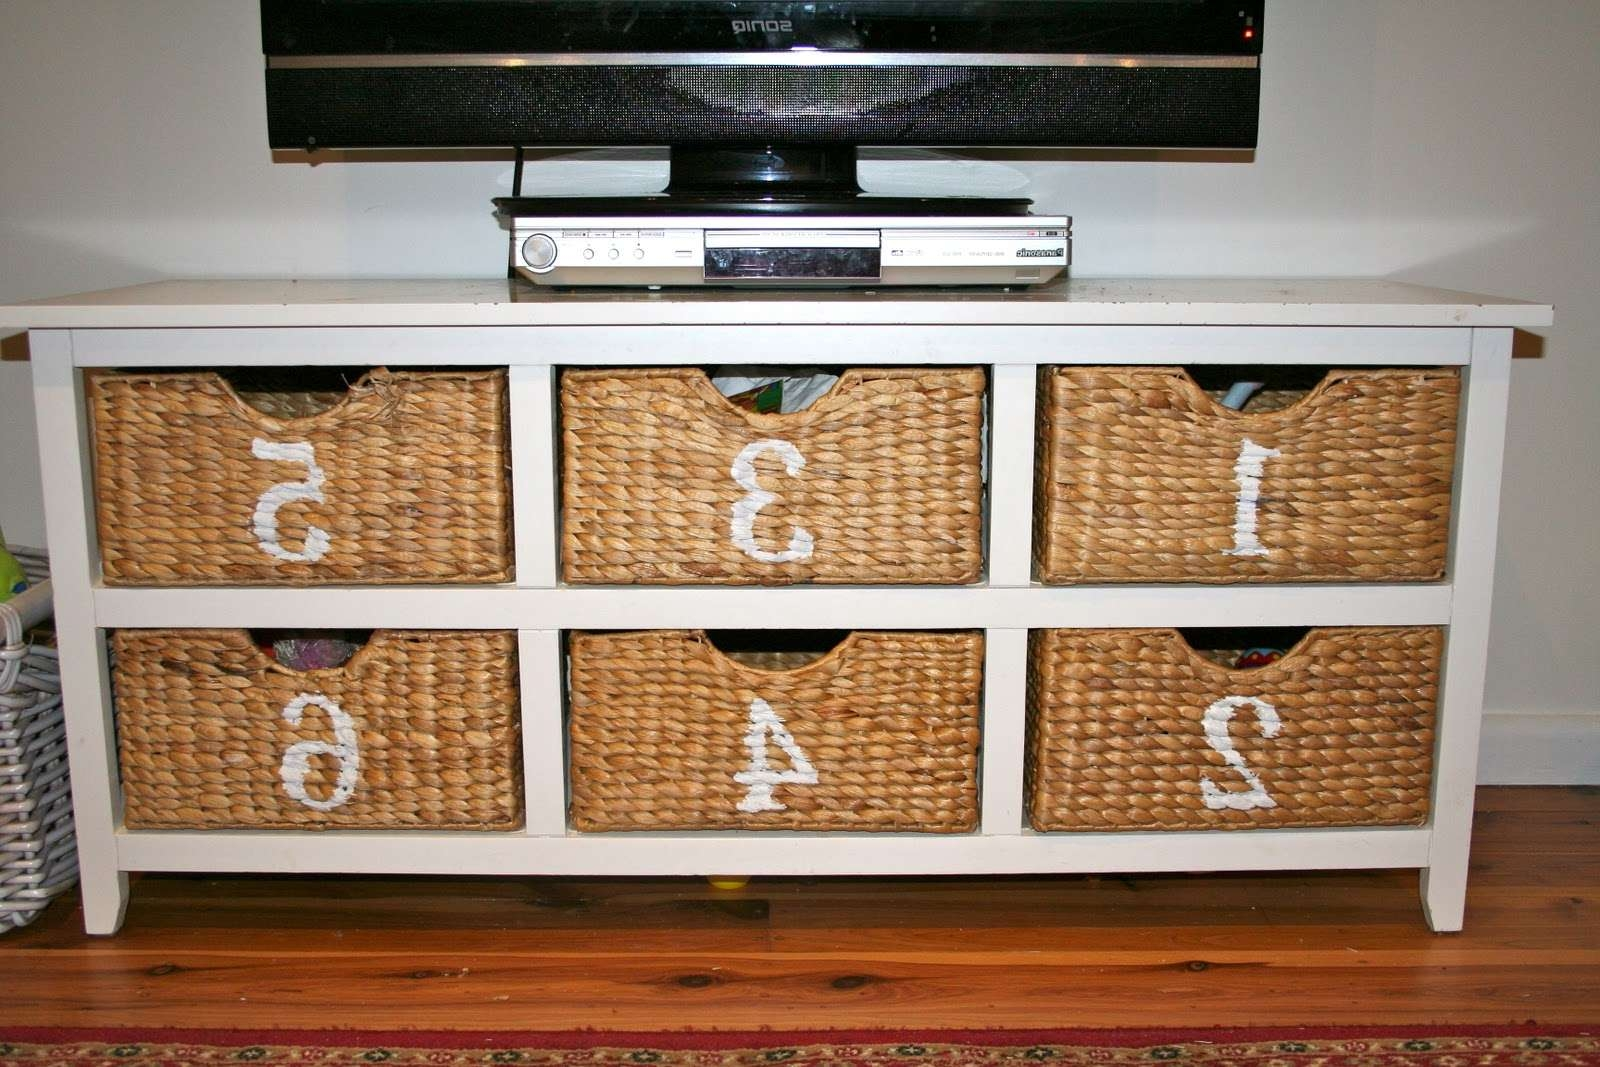 Piquant Toy Storage Unit 8 Cube Storage Unit Rattan Storage Drawer Within Tv Stands With Storage Baskets (View 10 of 15)